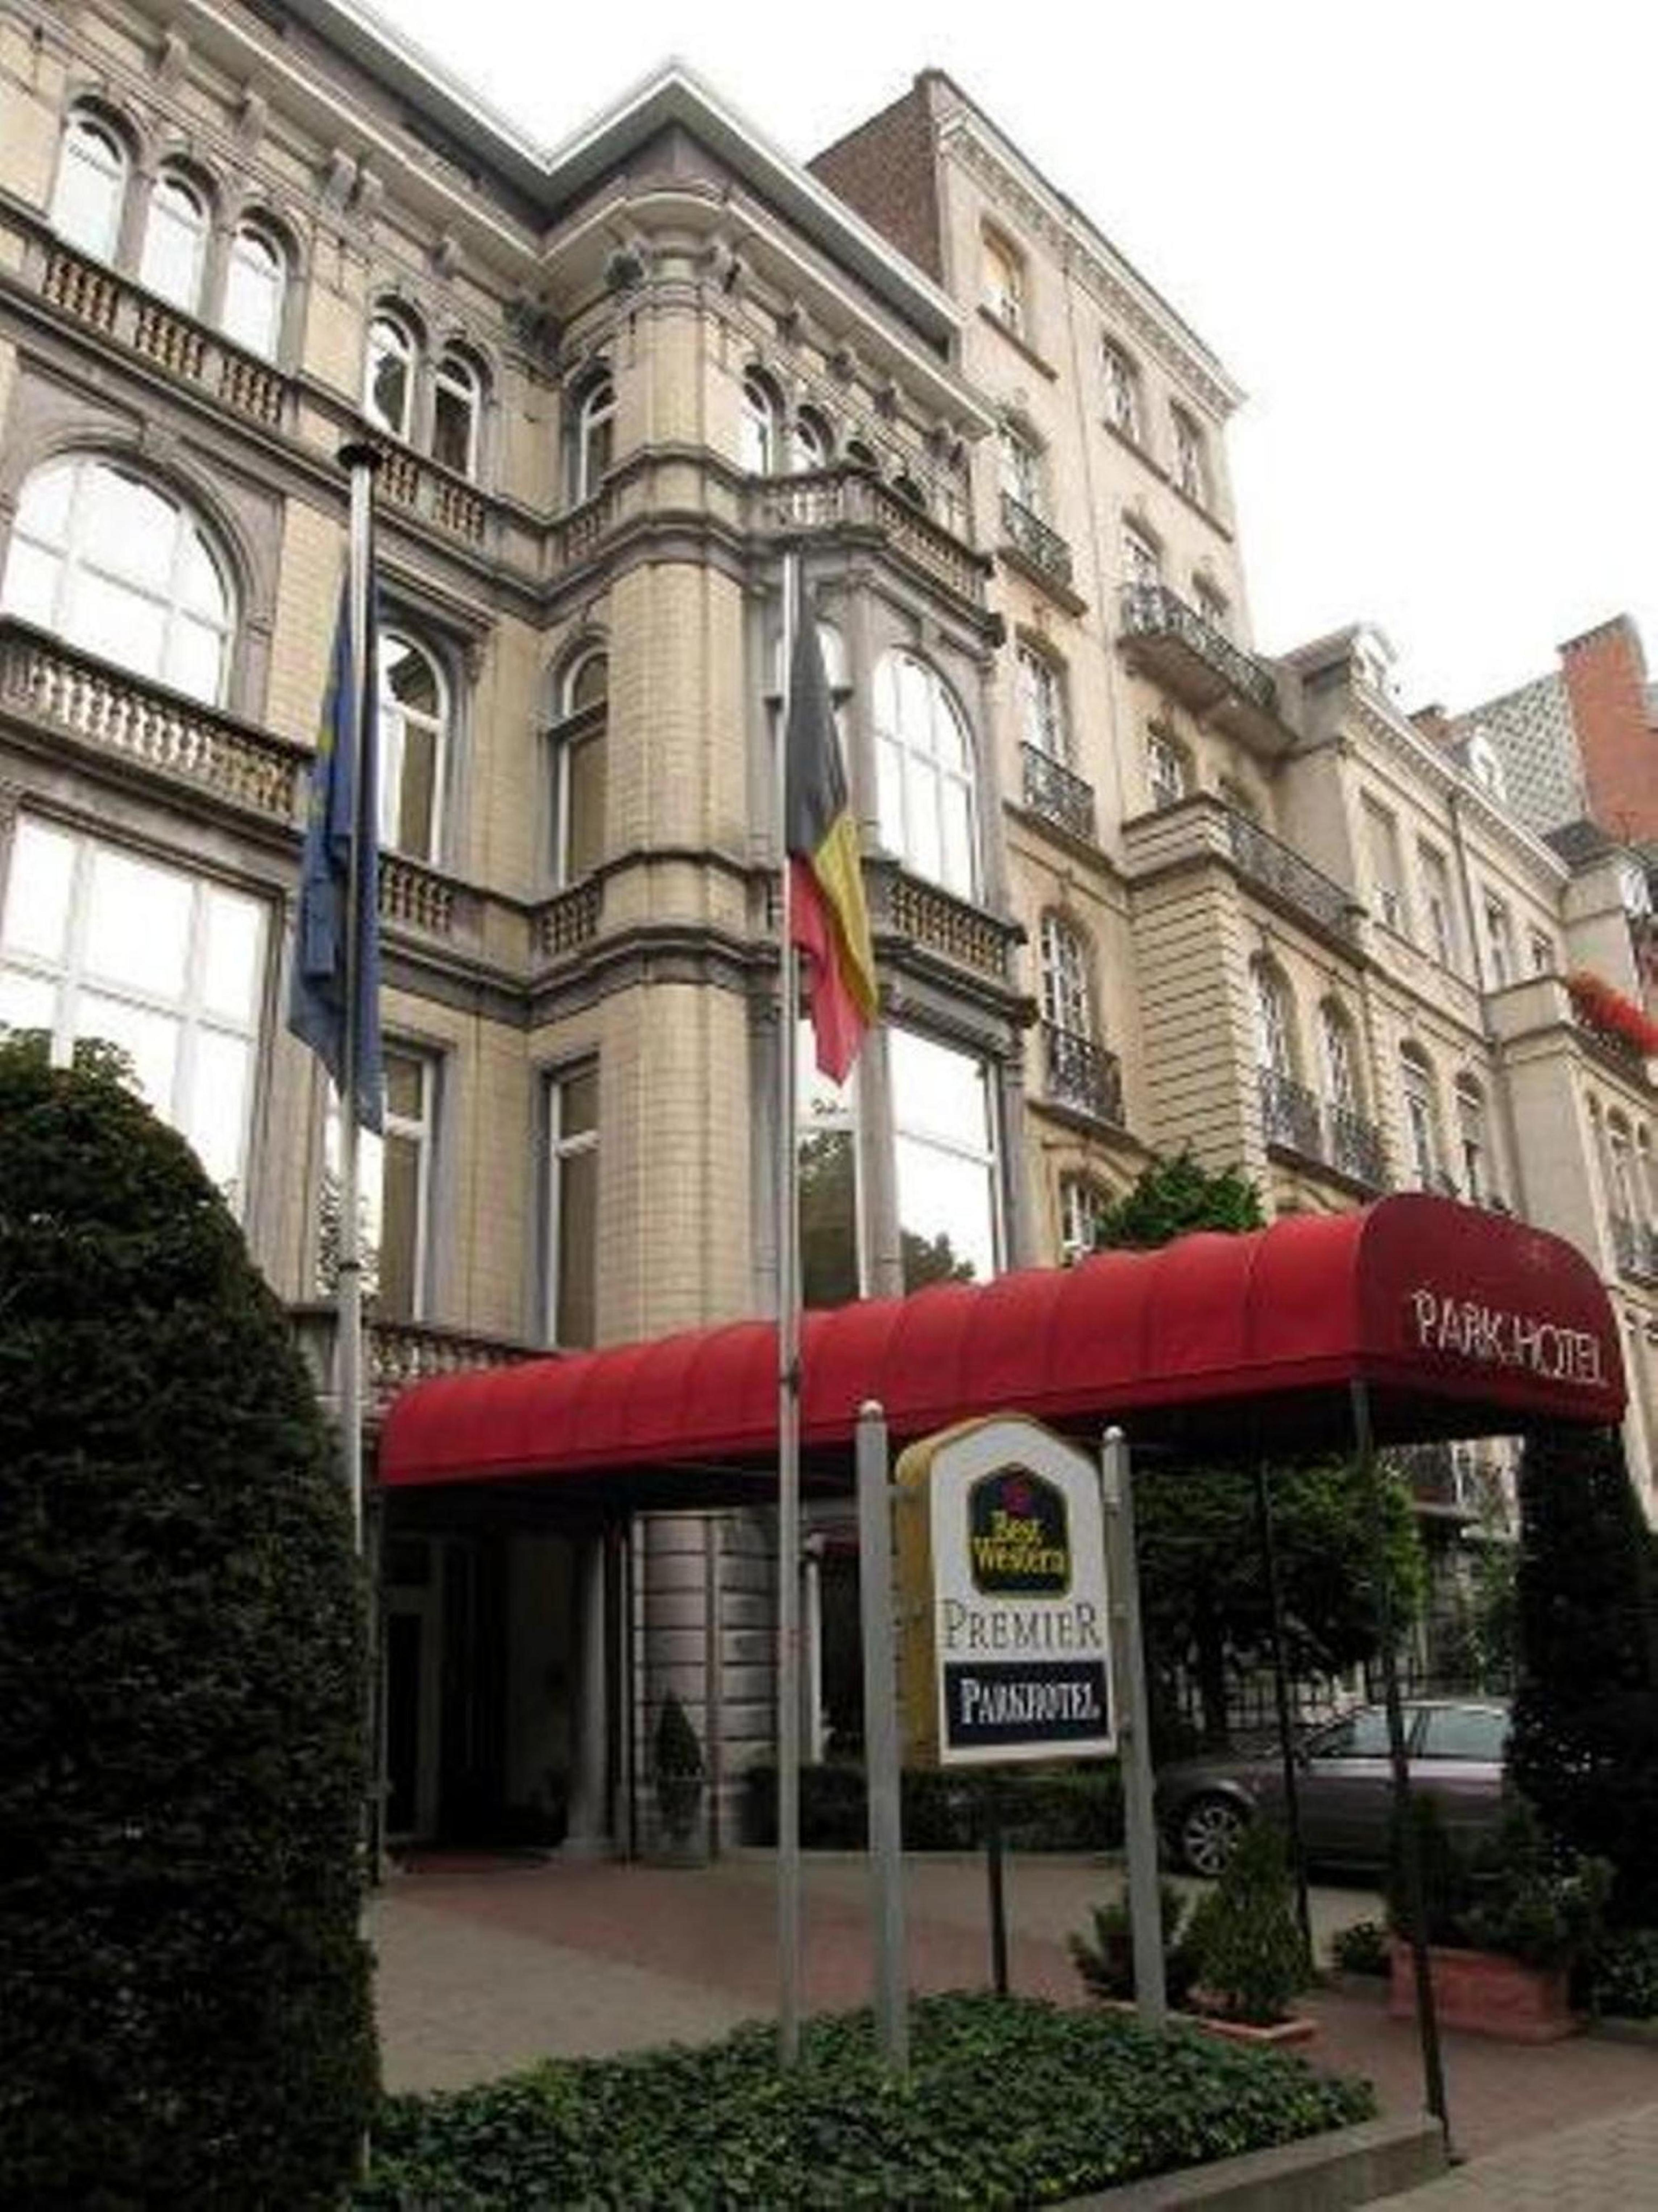 Park Hotel Brussels Located Opposite Jubelpark Offers You All Kinds Of Luxury The Has 3 Conference Rooms With A Banquet Capacity 120 Persons